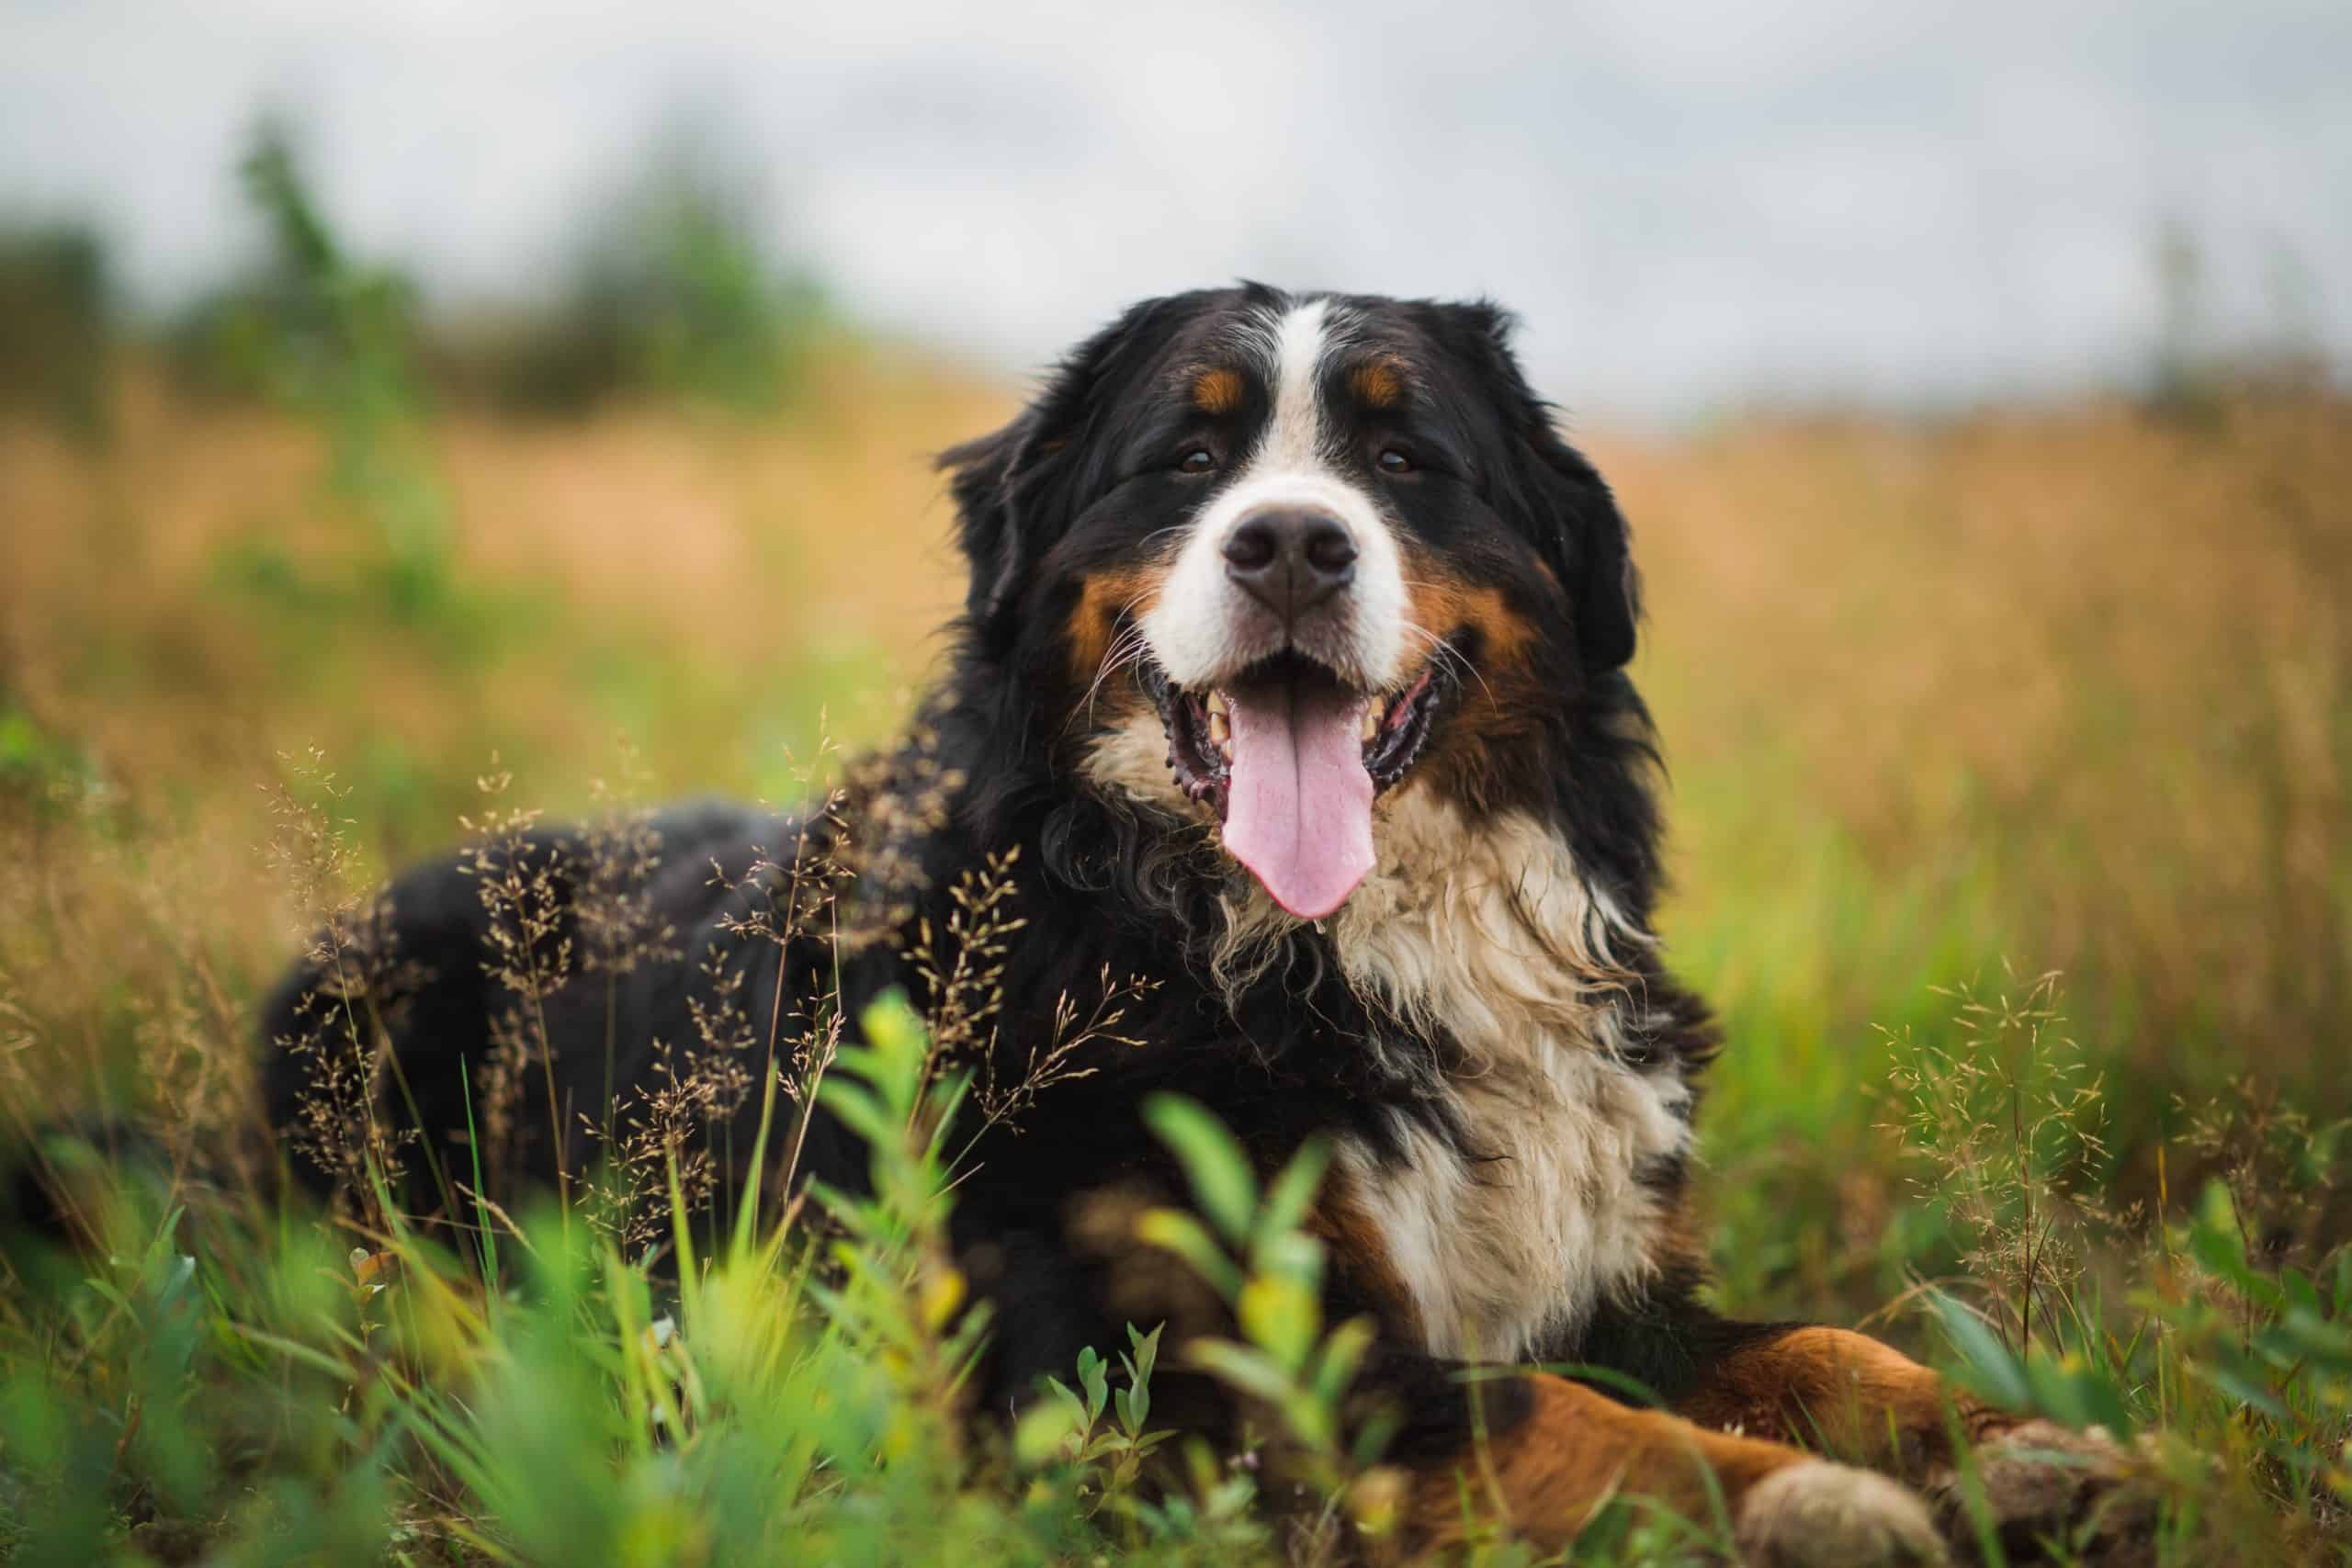 Happy Bernese Mountain Dog in a field. Big dog health issues include joint health and heart problems, which, unfortunately, can shorten your dog's lifespan.